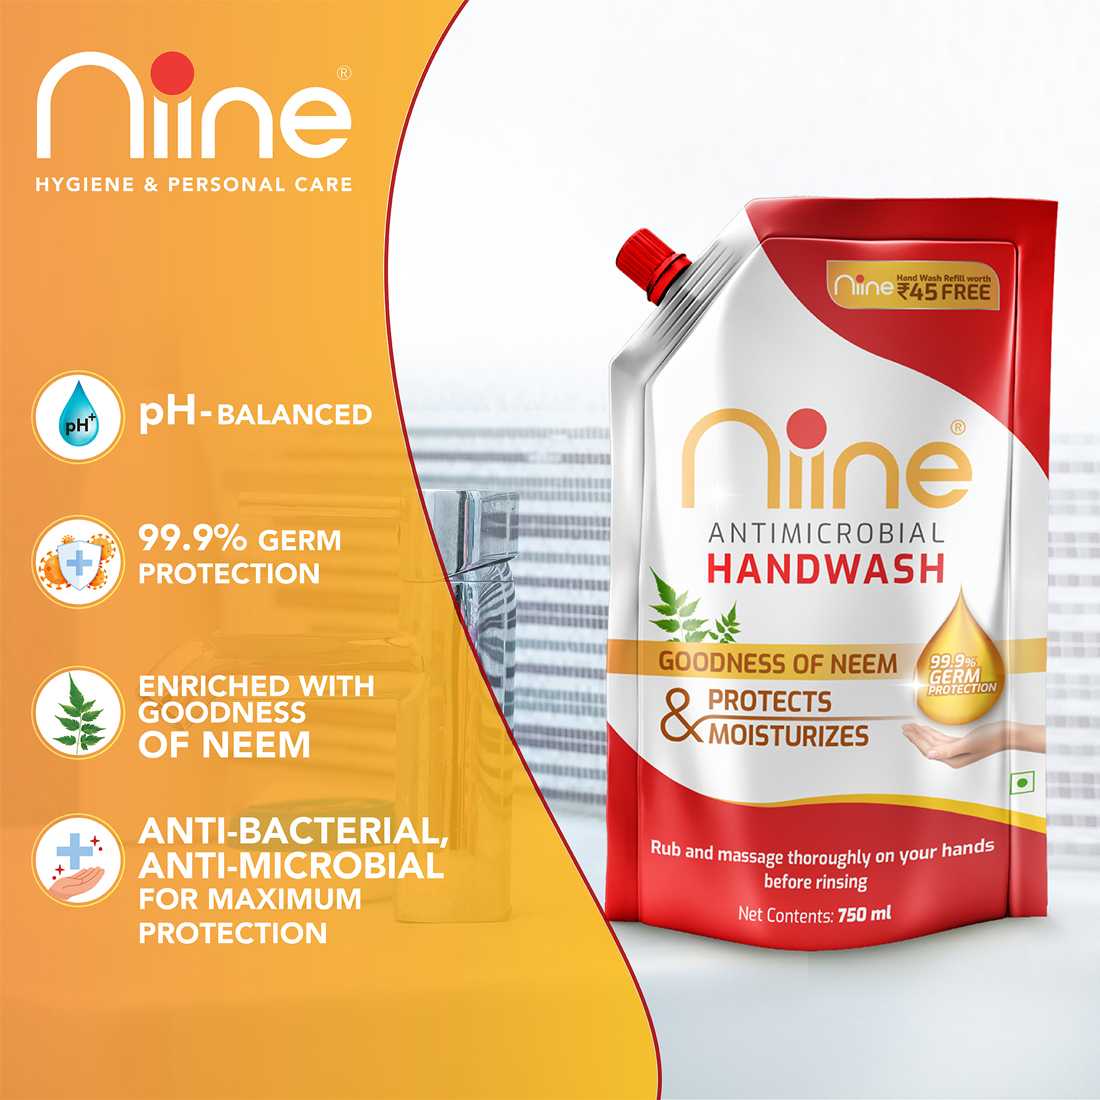 Niine Handwash Spout for 99.9% germ protection and enriched with goodness of Neem, 750ml Spout & 180 ml Refill (Combo pack)-Pack of 2